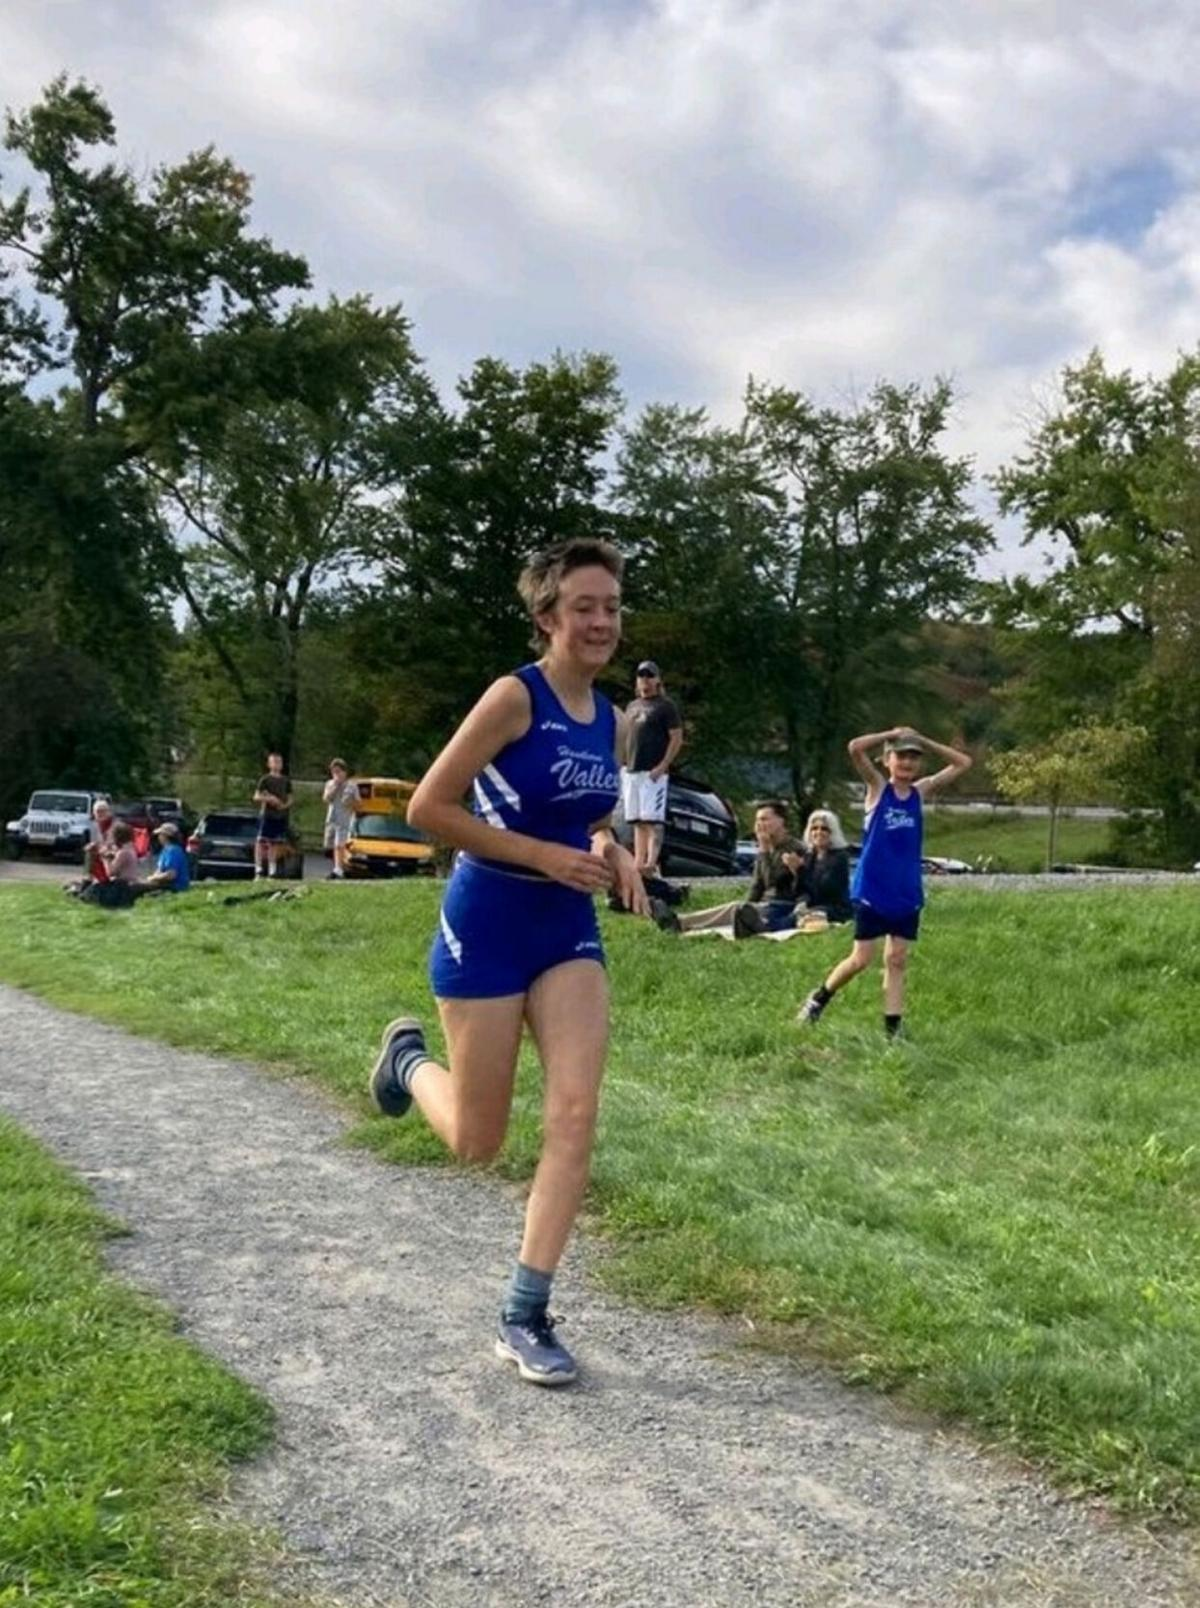 LOCAL ROUNDUP: HVS Runners reach new heights in Windham